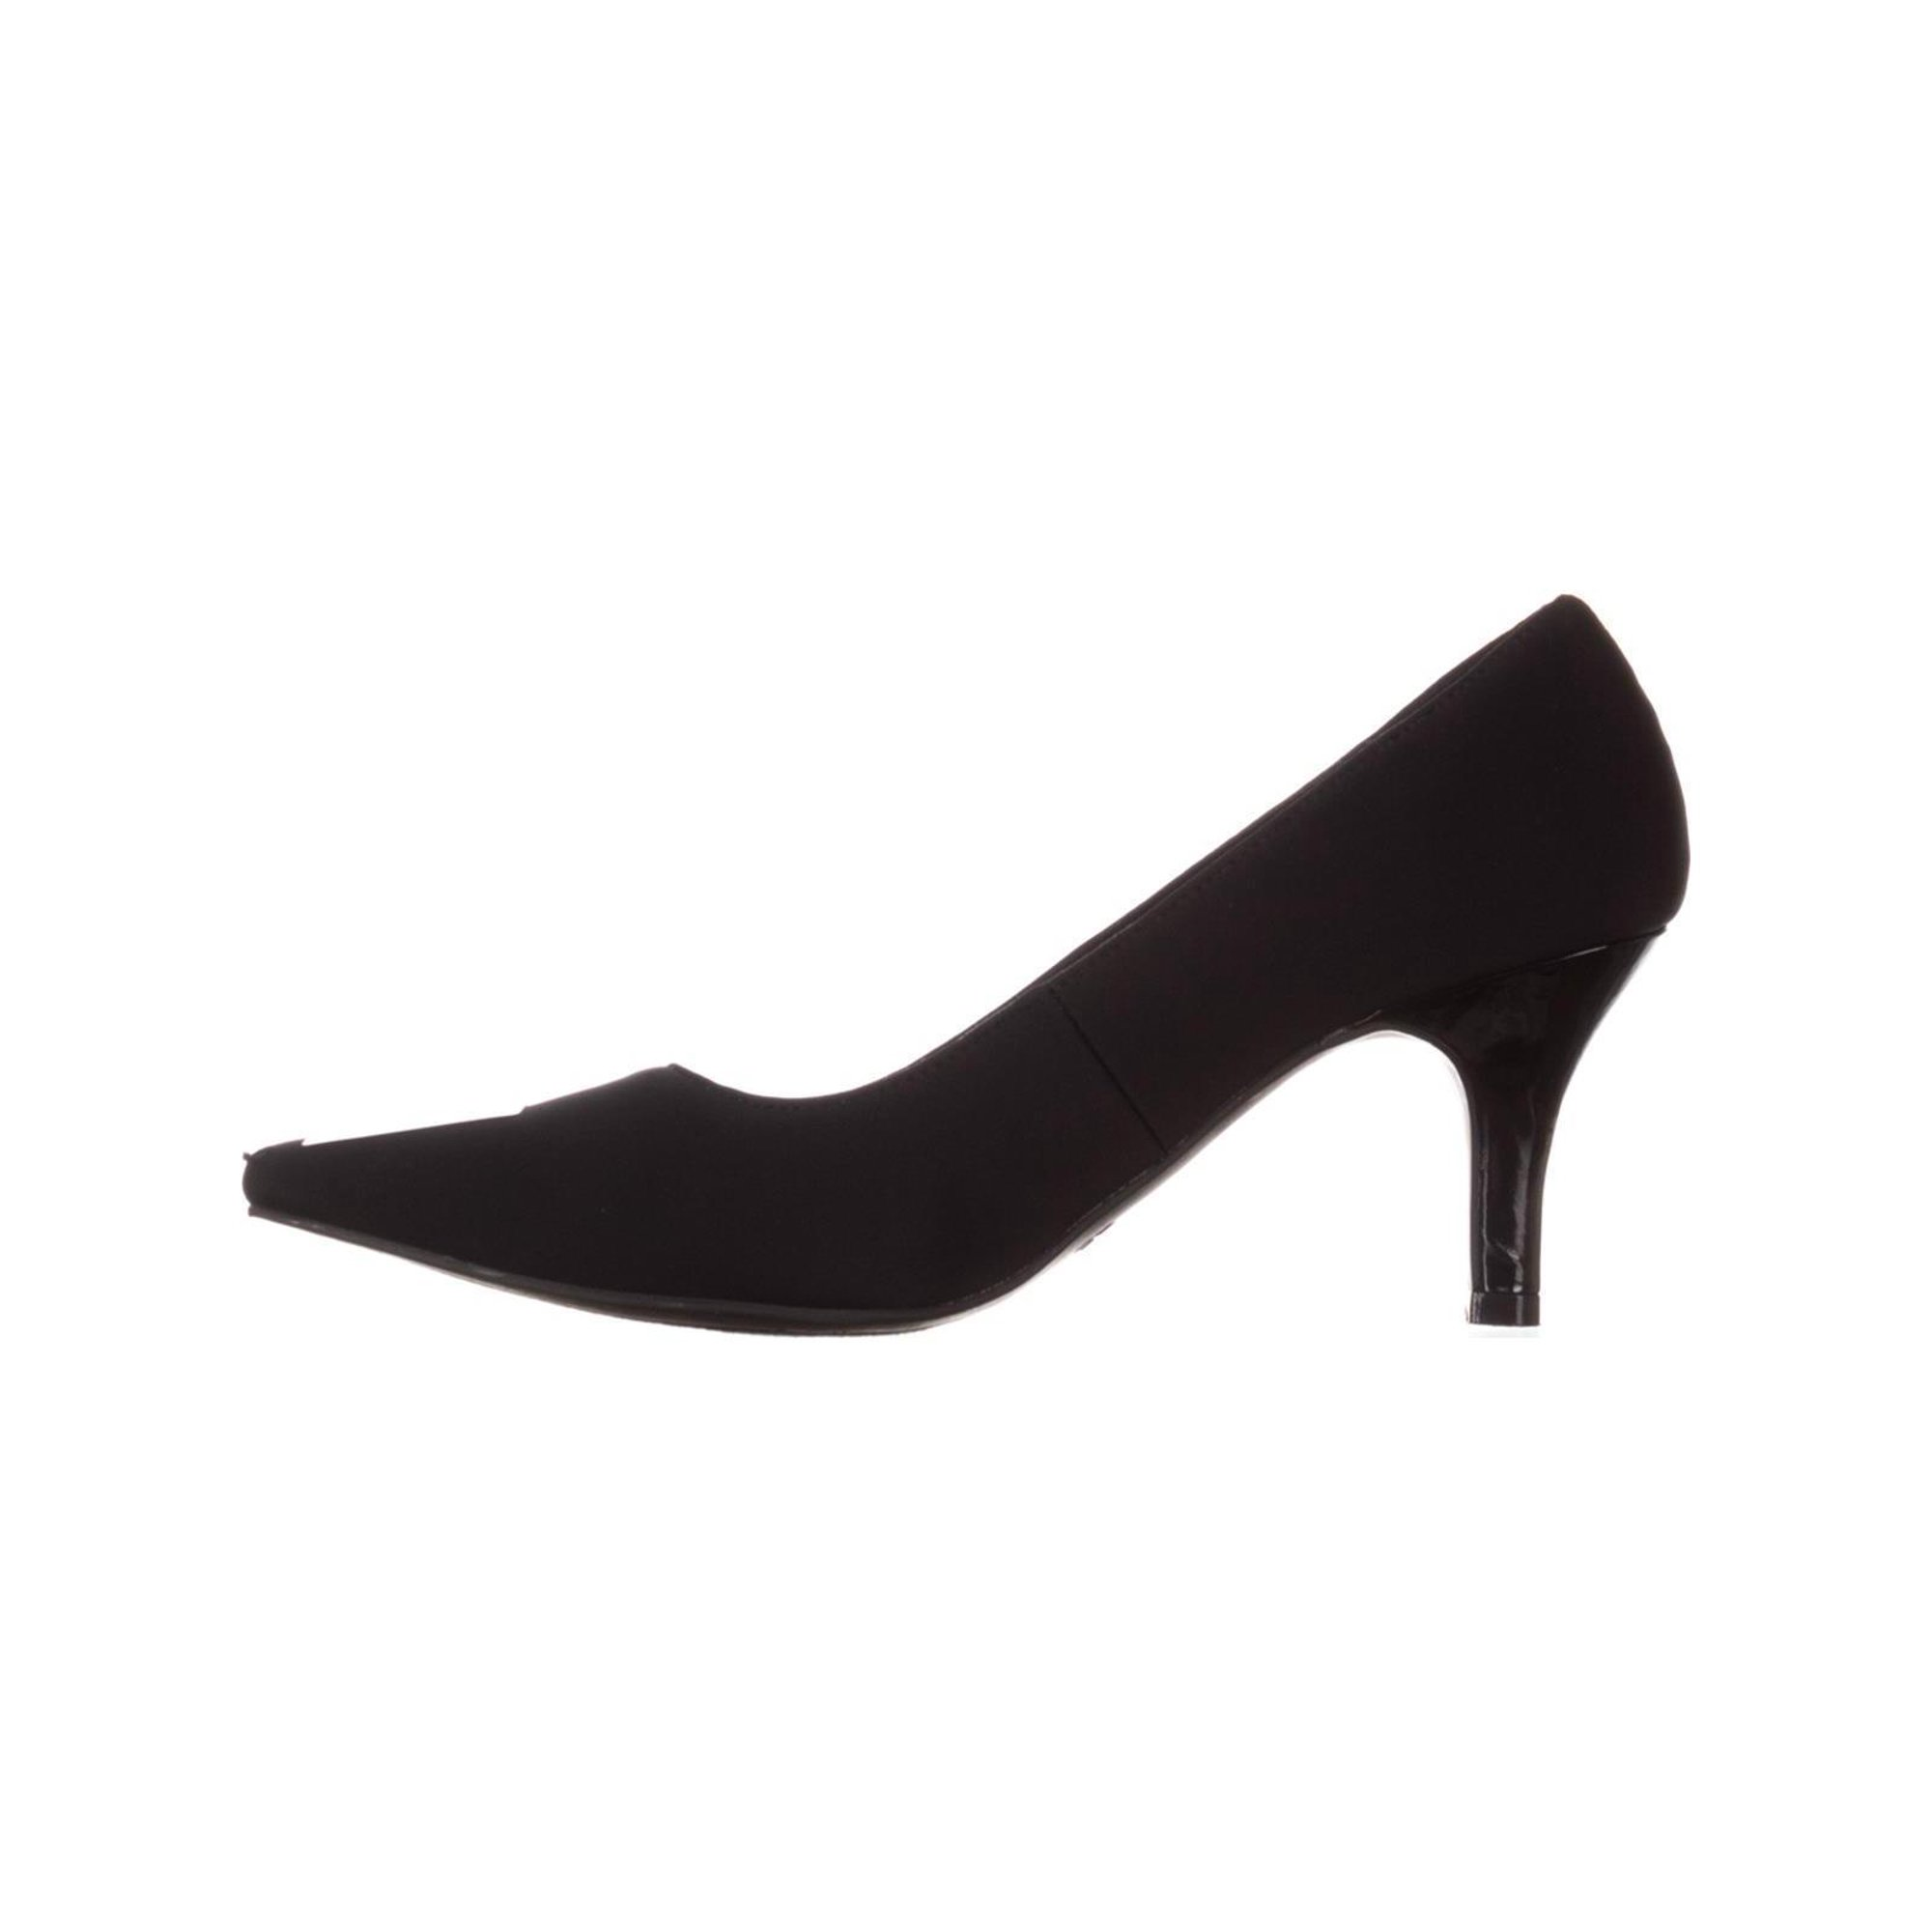 5662bf756914 Karen Scott Womens Clancy Pointed Toe Classic Pumps